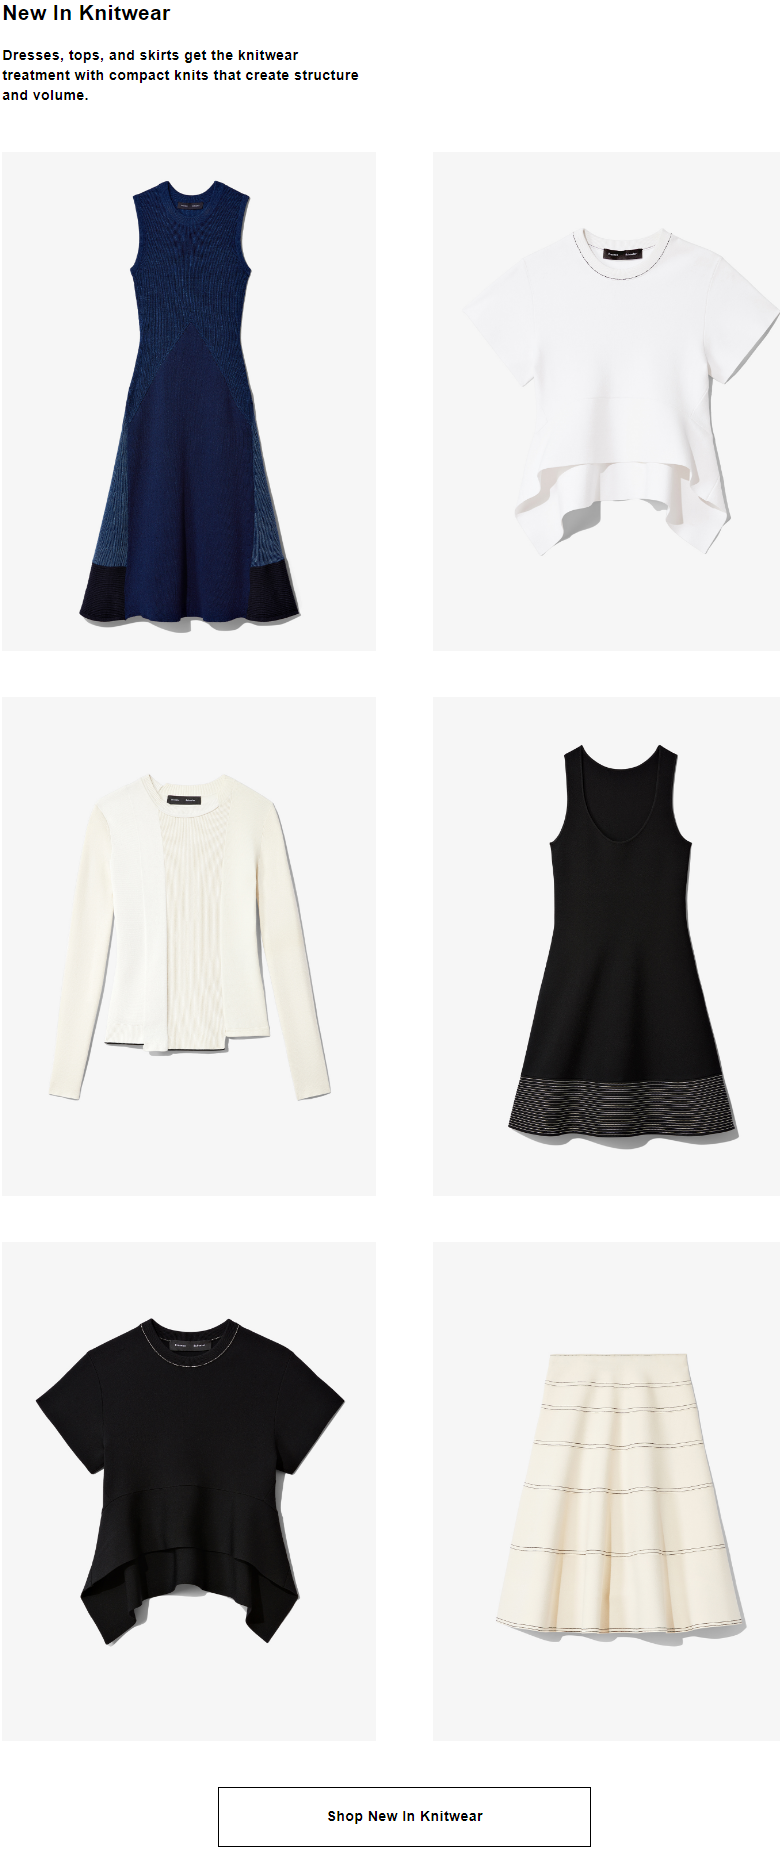 Dresses, tops, and skirts get the knitwear treatment with compact knits that create structure and vo...